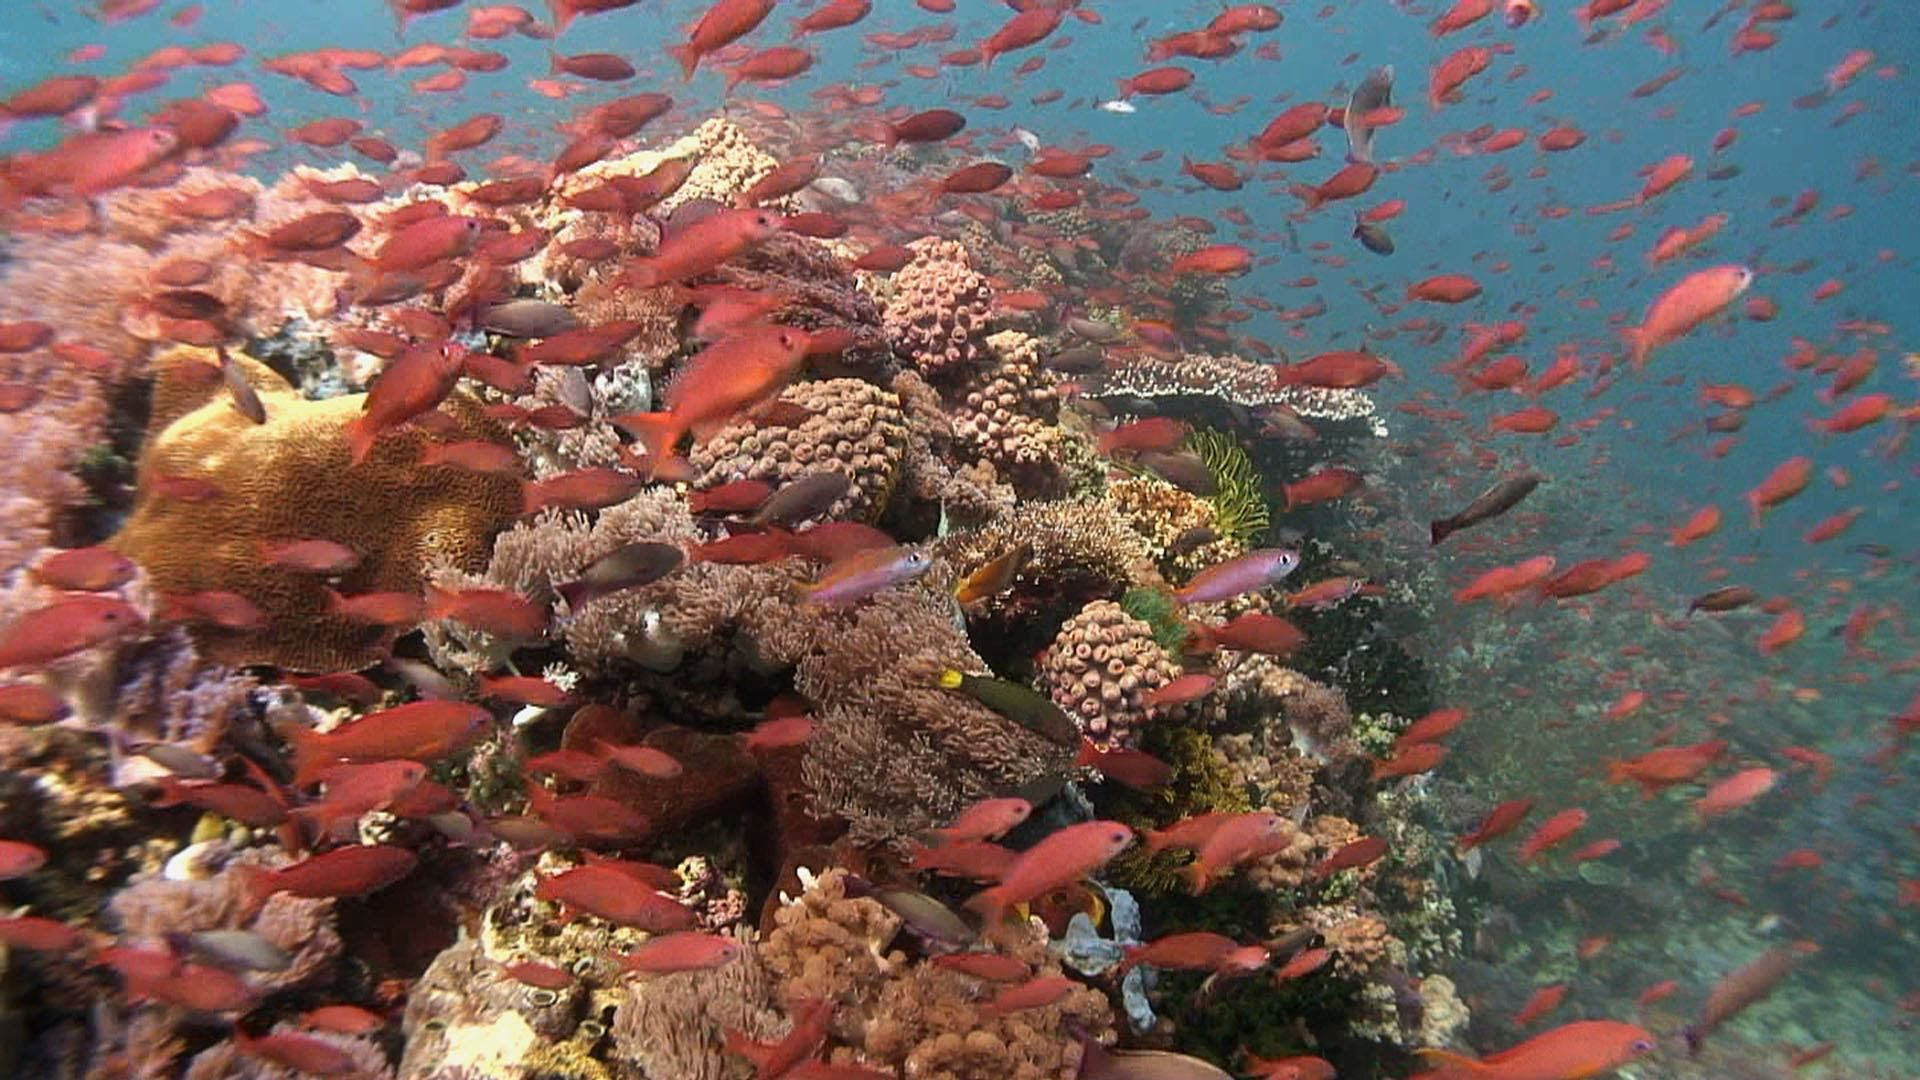 Jonathan Bird S Blue World Coral Reefs With Images